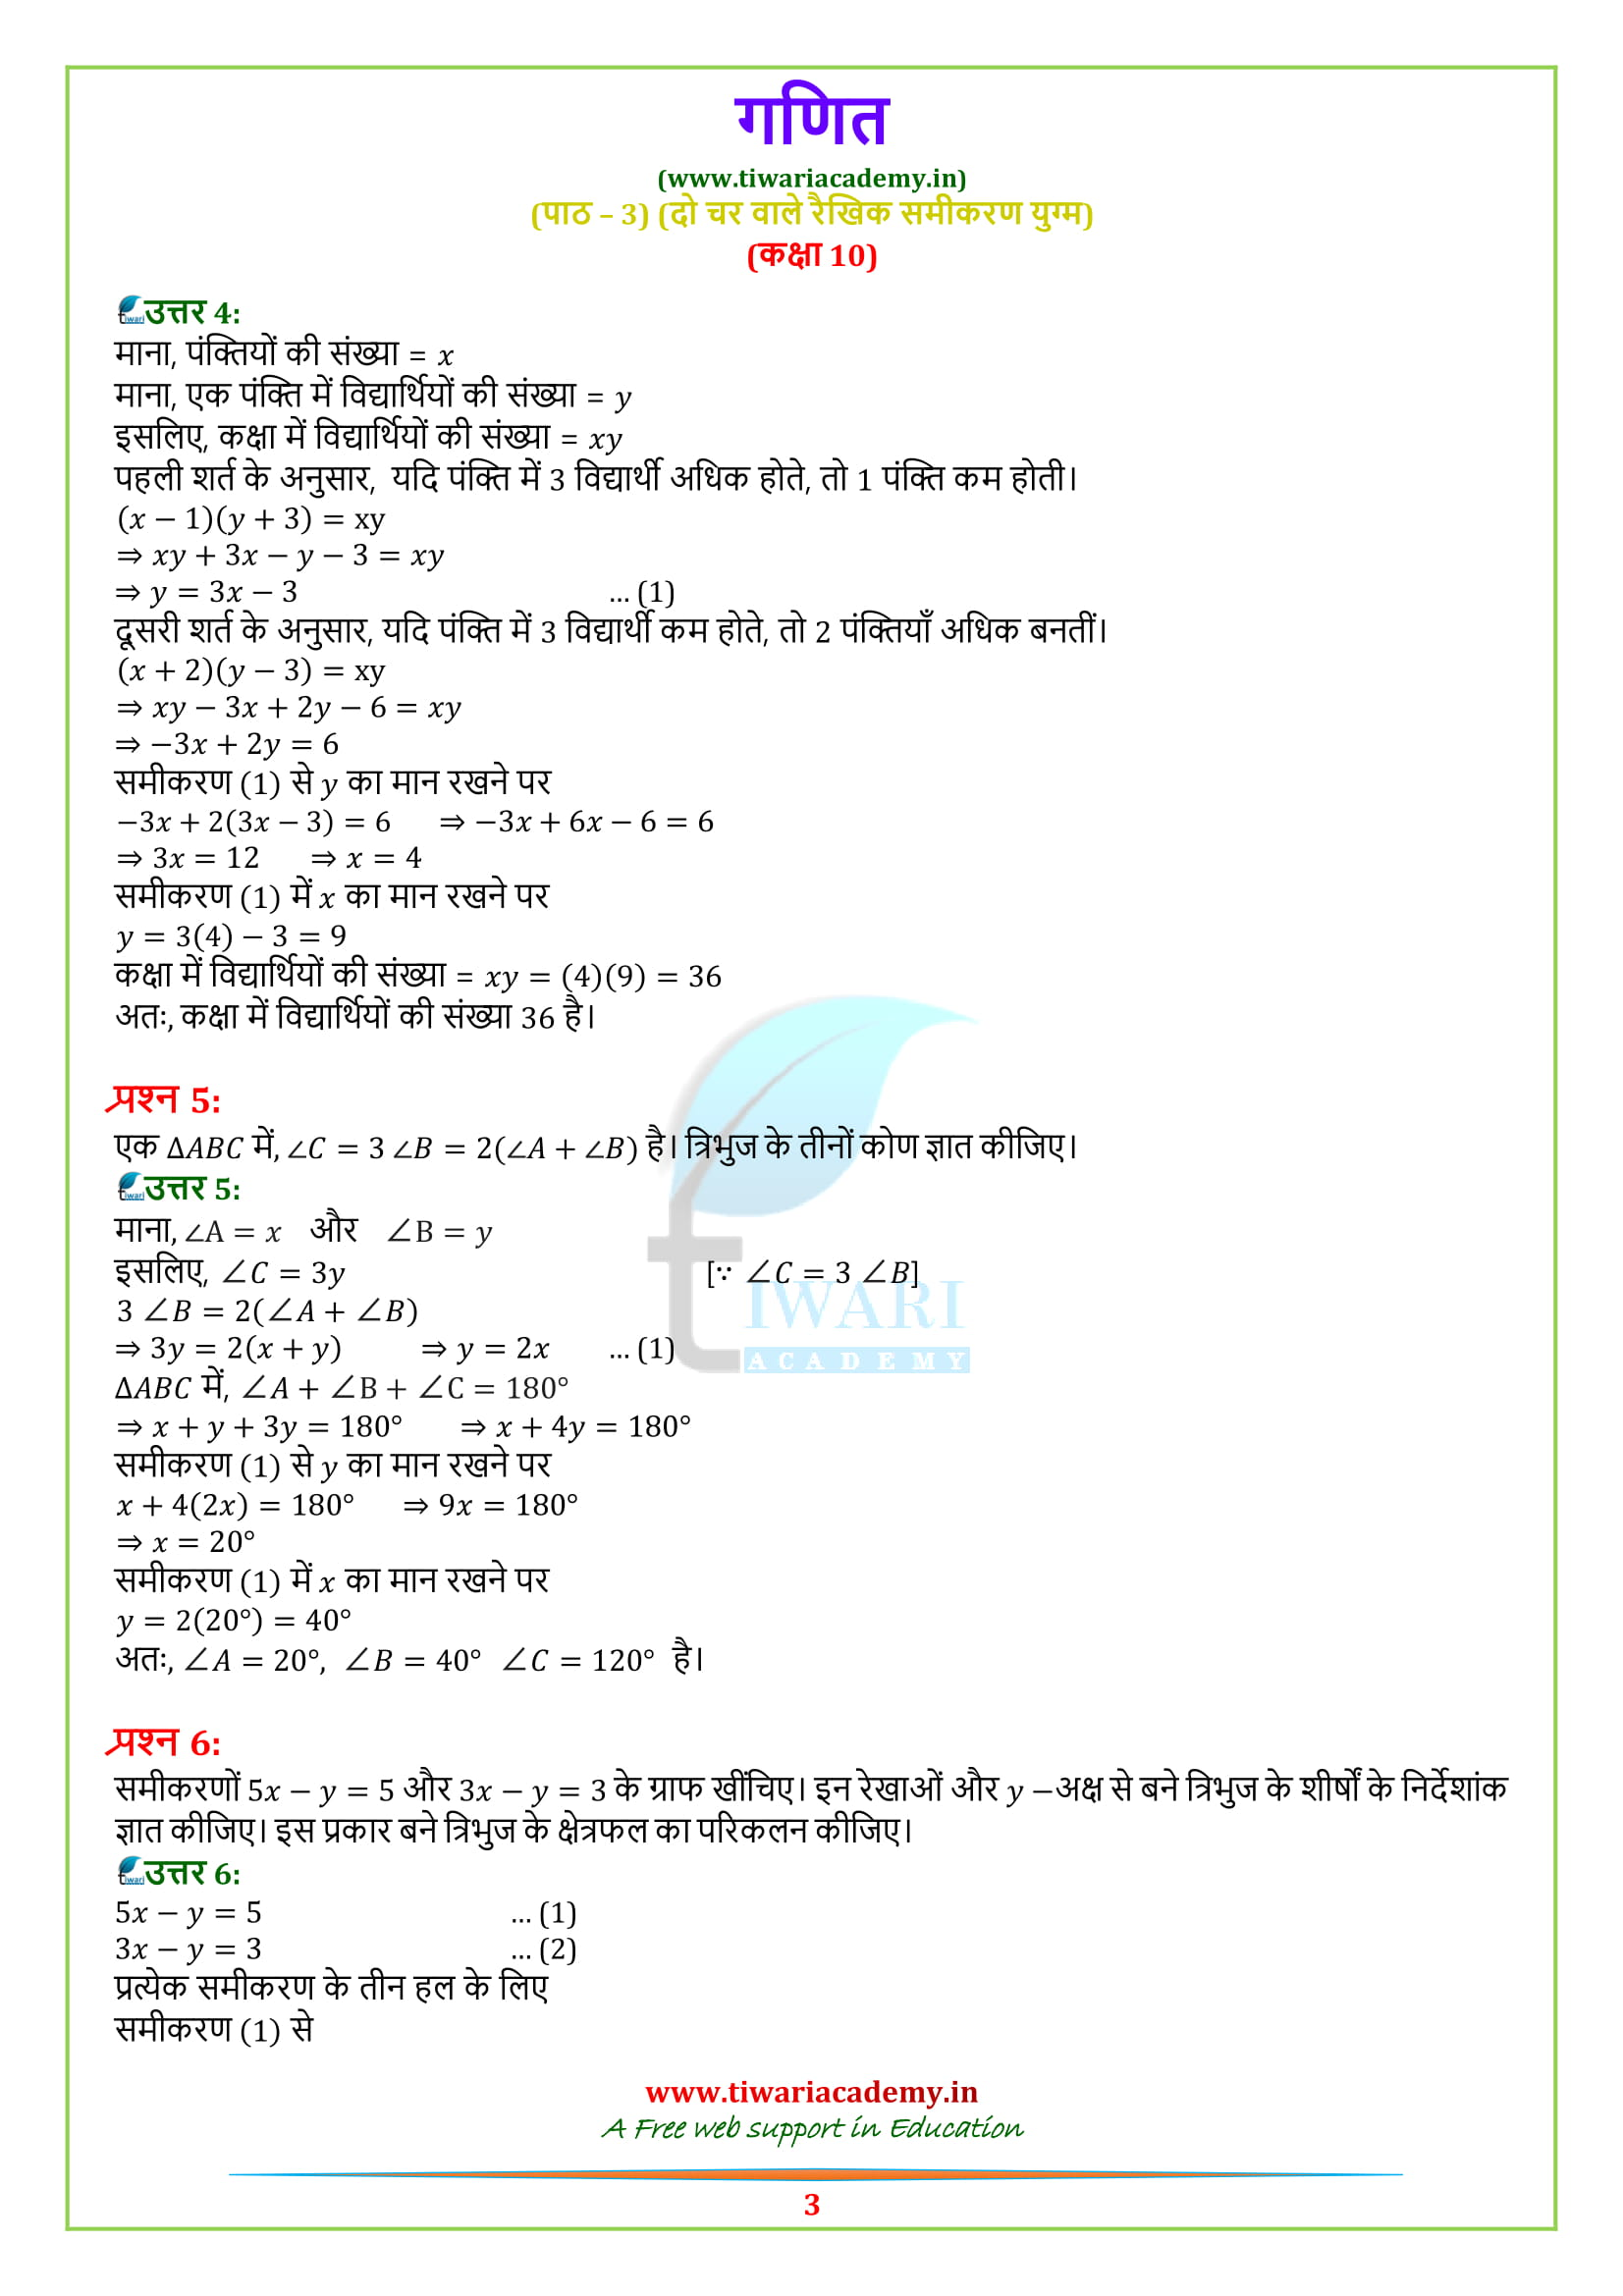 10 maths exercise 3.7 question 1, 2, 3, 4, 5, 6, 7, 8 in hindi medium